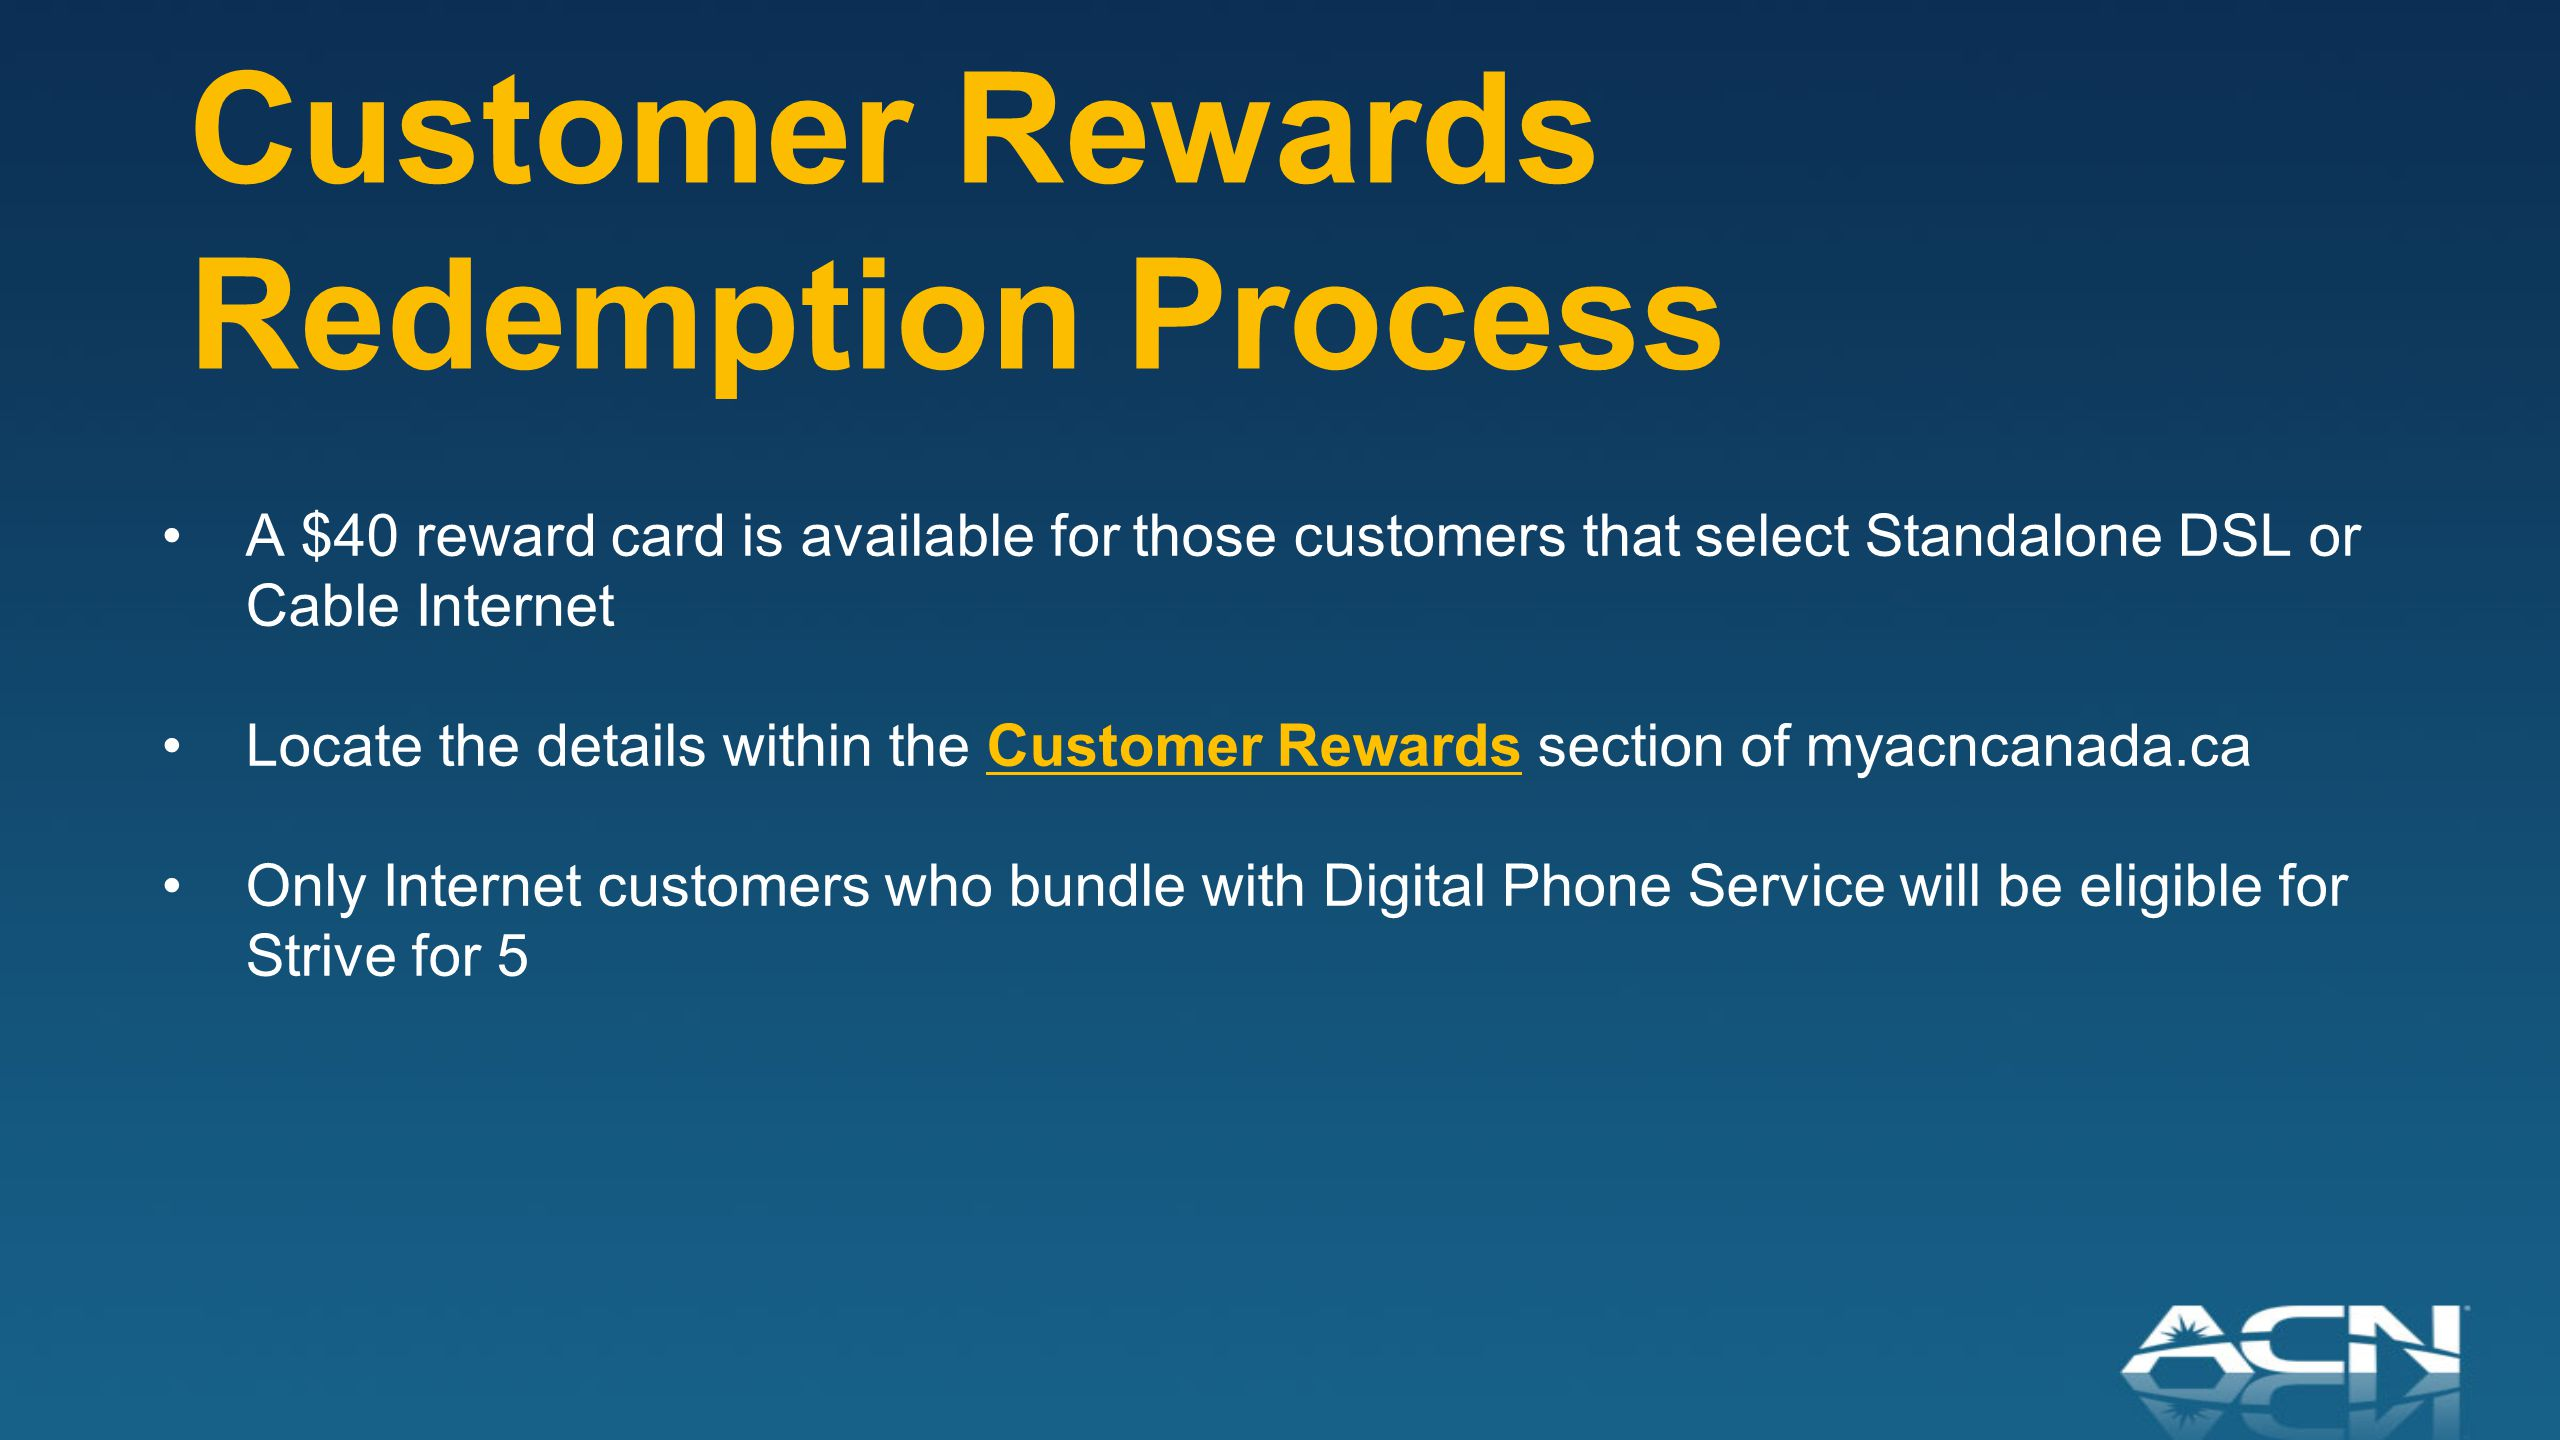 Customer Rewards Redemption Process A $40 reward card is available for those customers that select Standalone DSL or Cable Internet Locate the details within the Customer Rewards section of myacncanada.ca Only Internet customers who bundle with Digital Phone Service will be eligible for Strive for 5